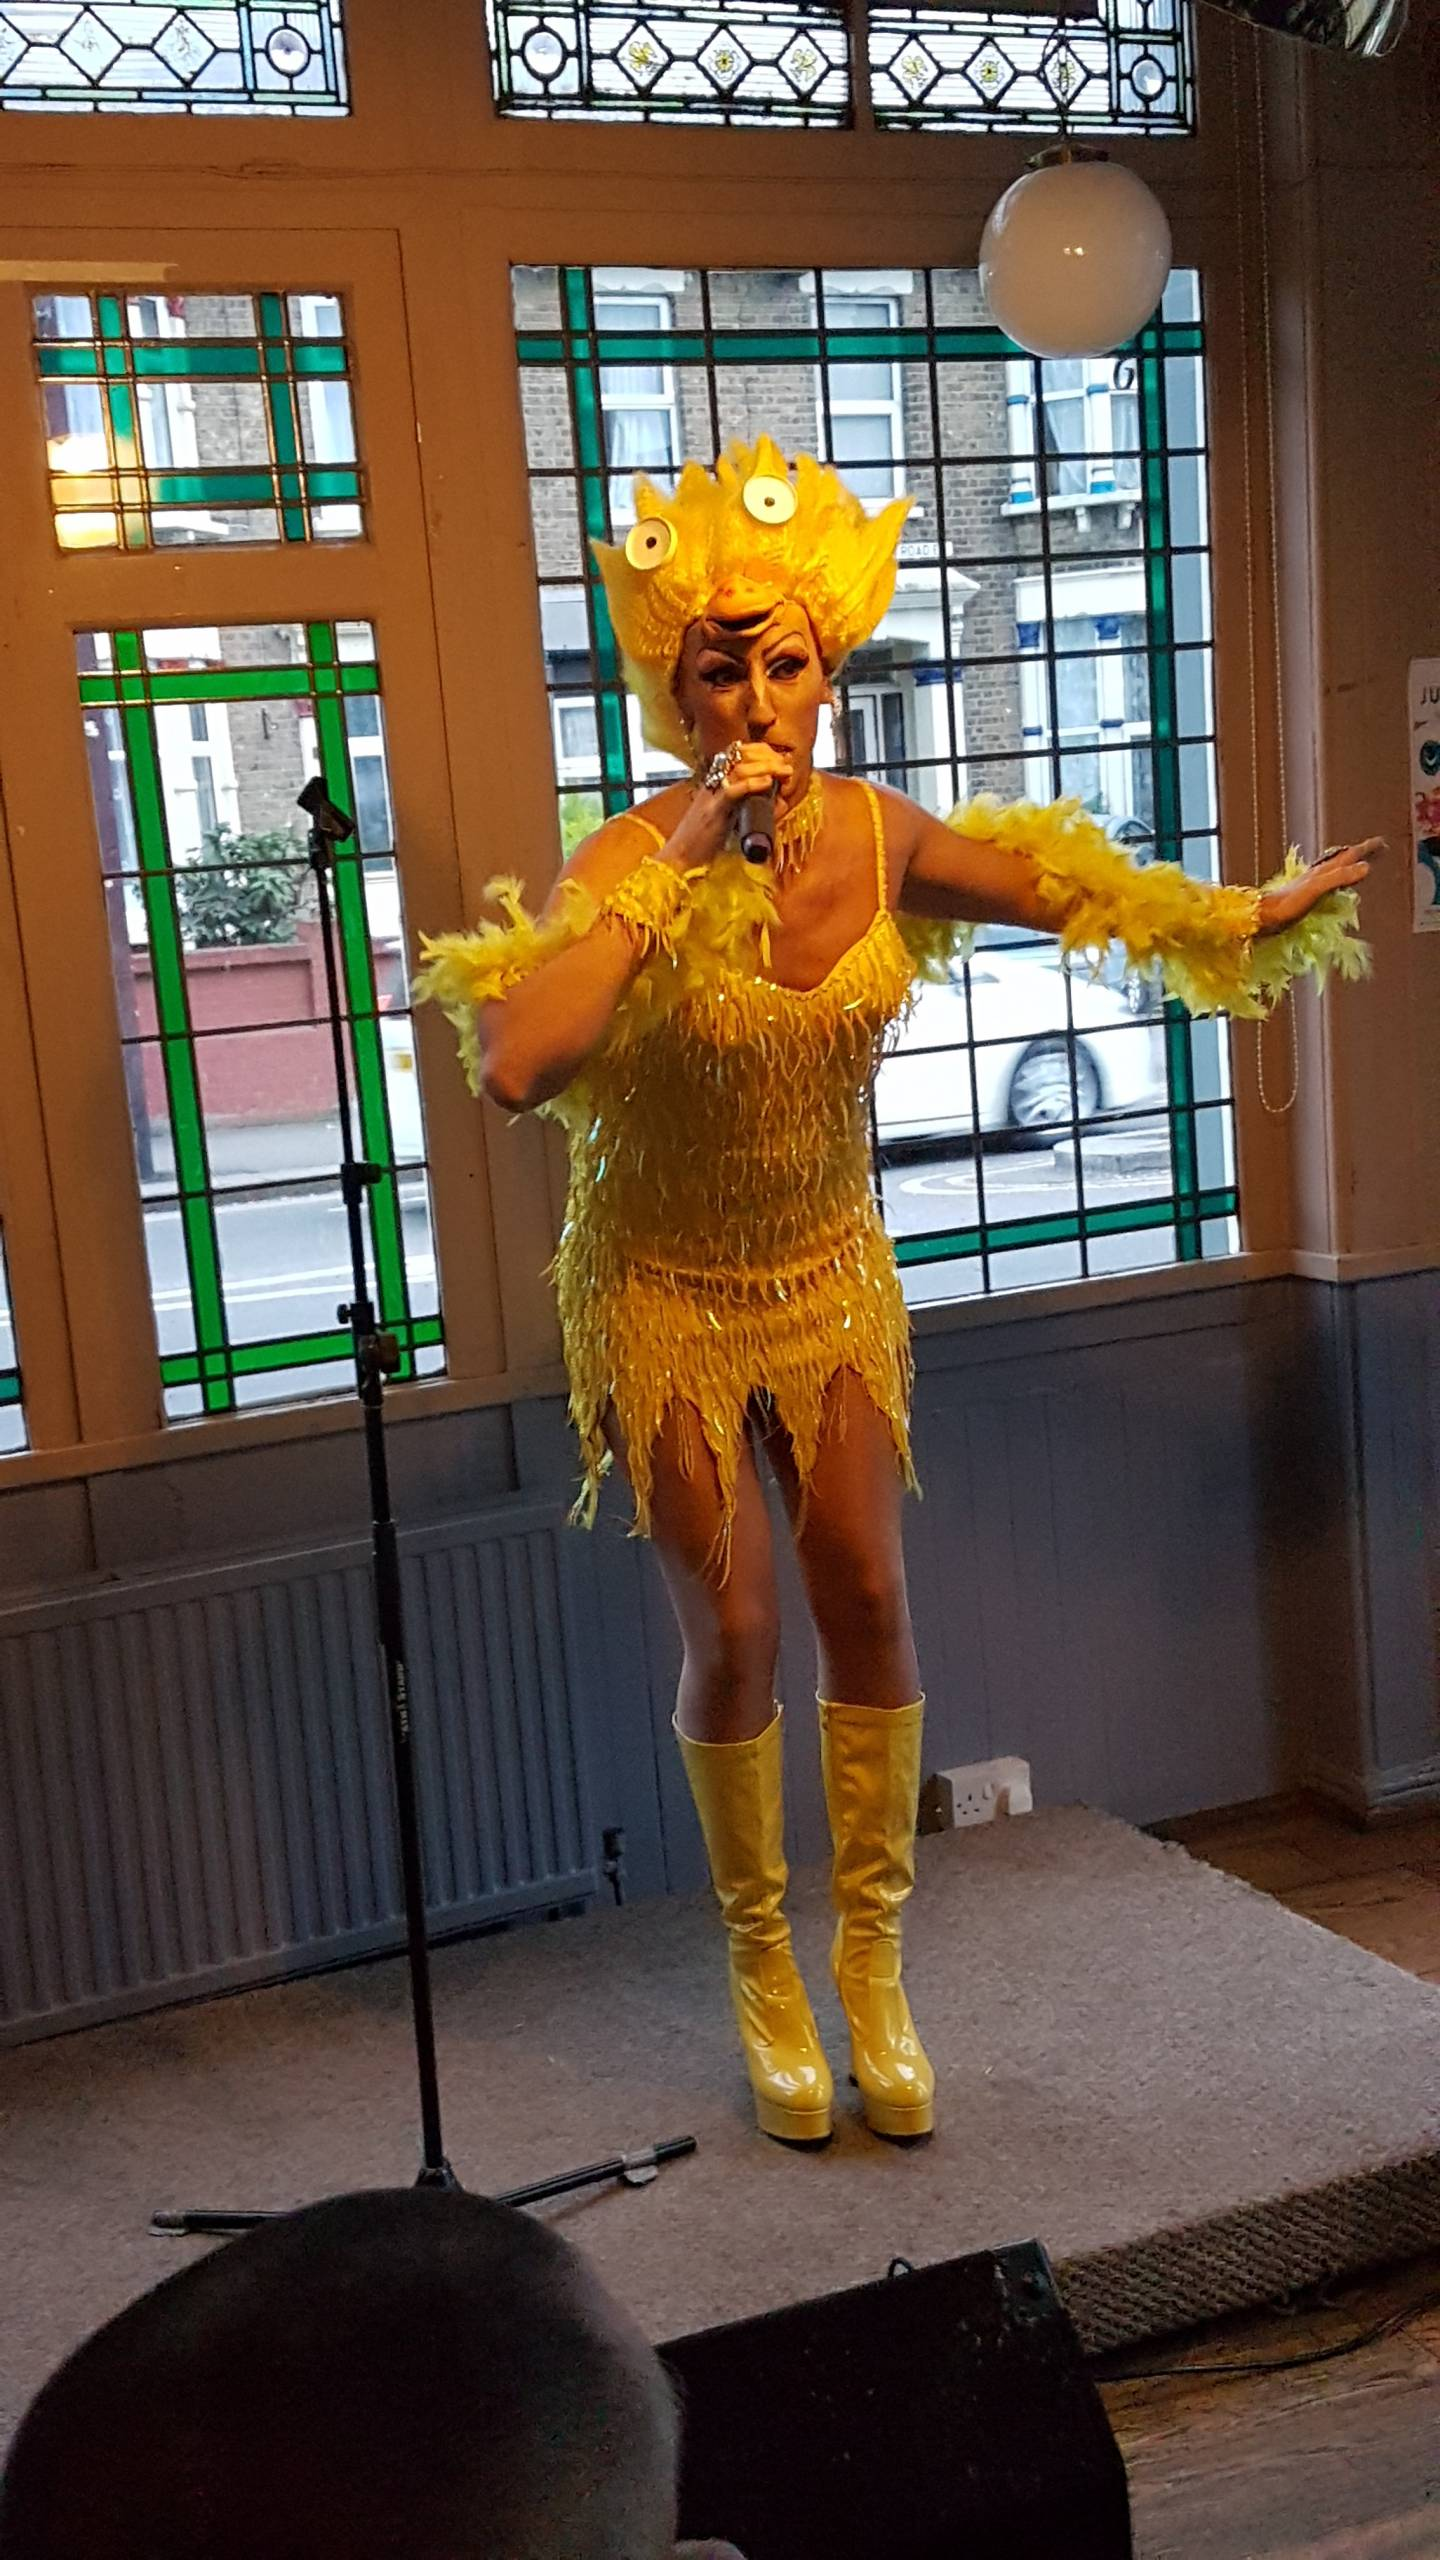 Fonda dressed as an Easter chick